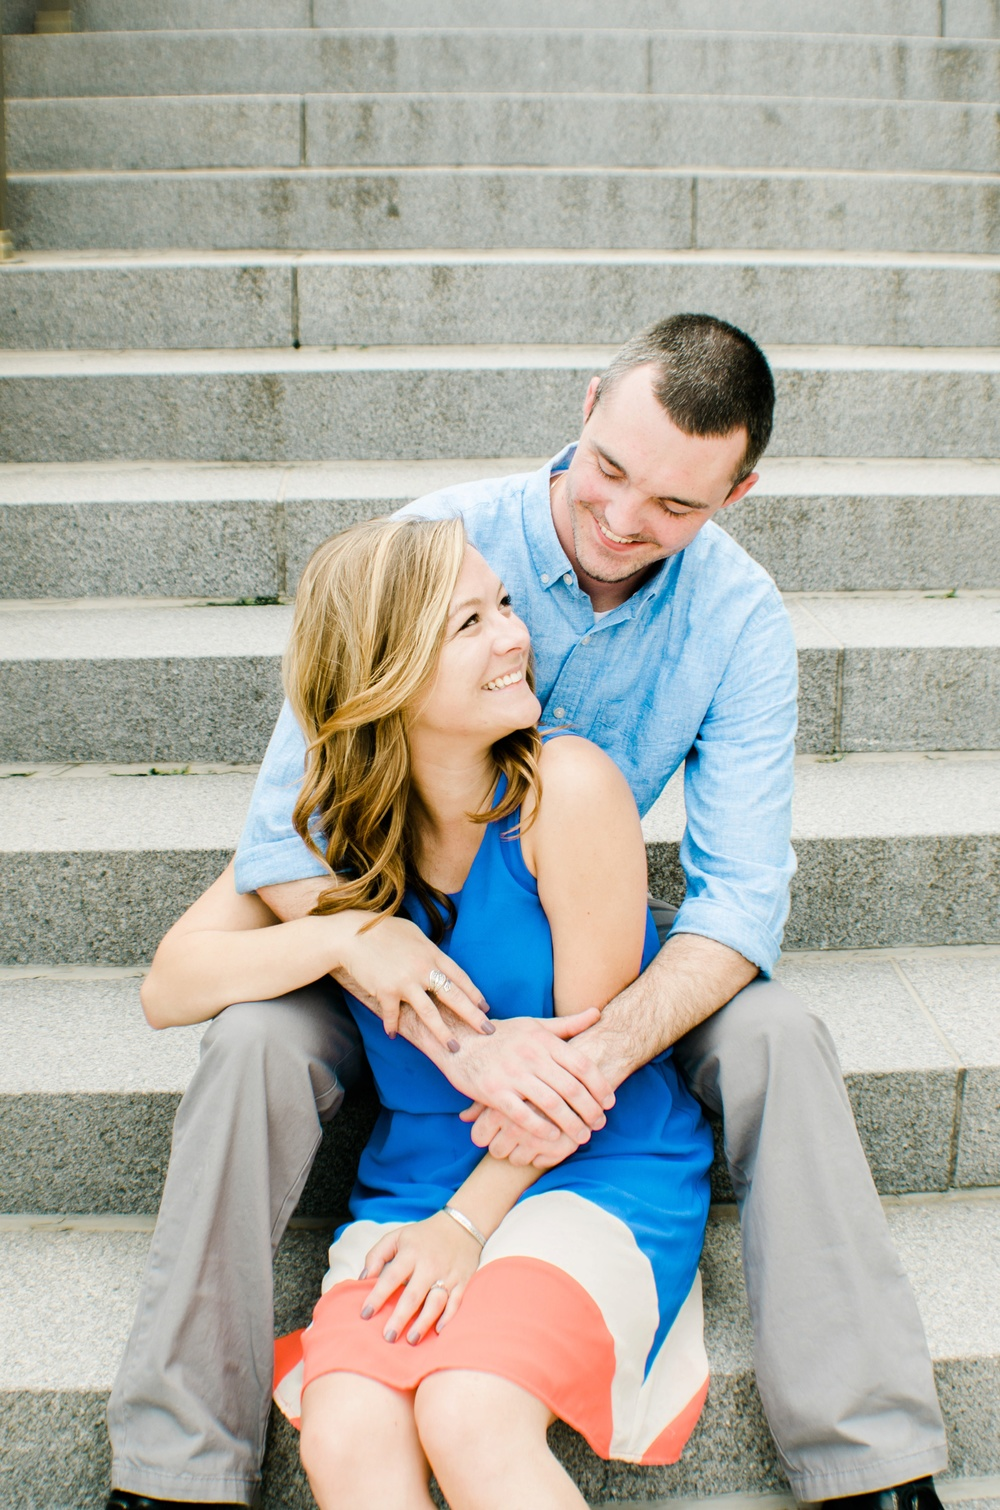 Downtown Des Moines Engagement | Minneapolis Wedding Photographer Ali Leigh Photo_0426.jpg